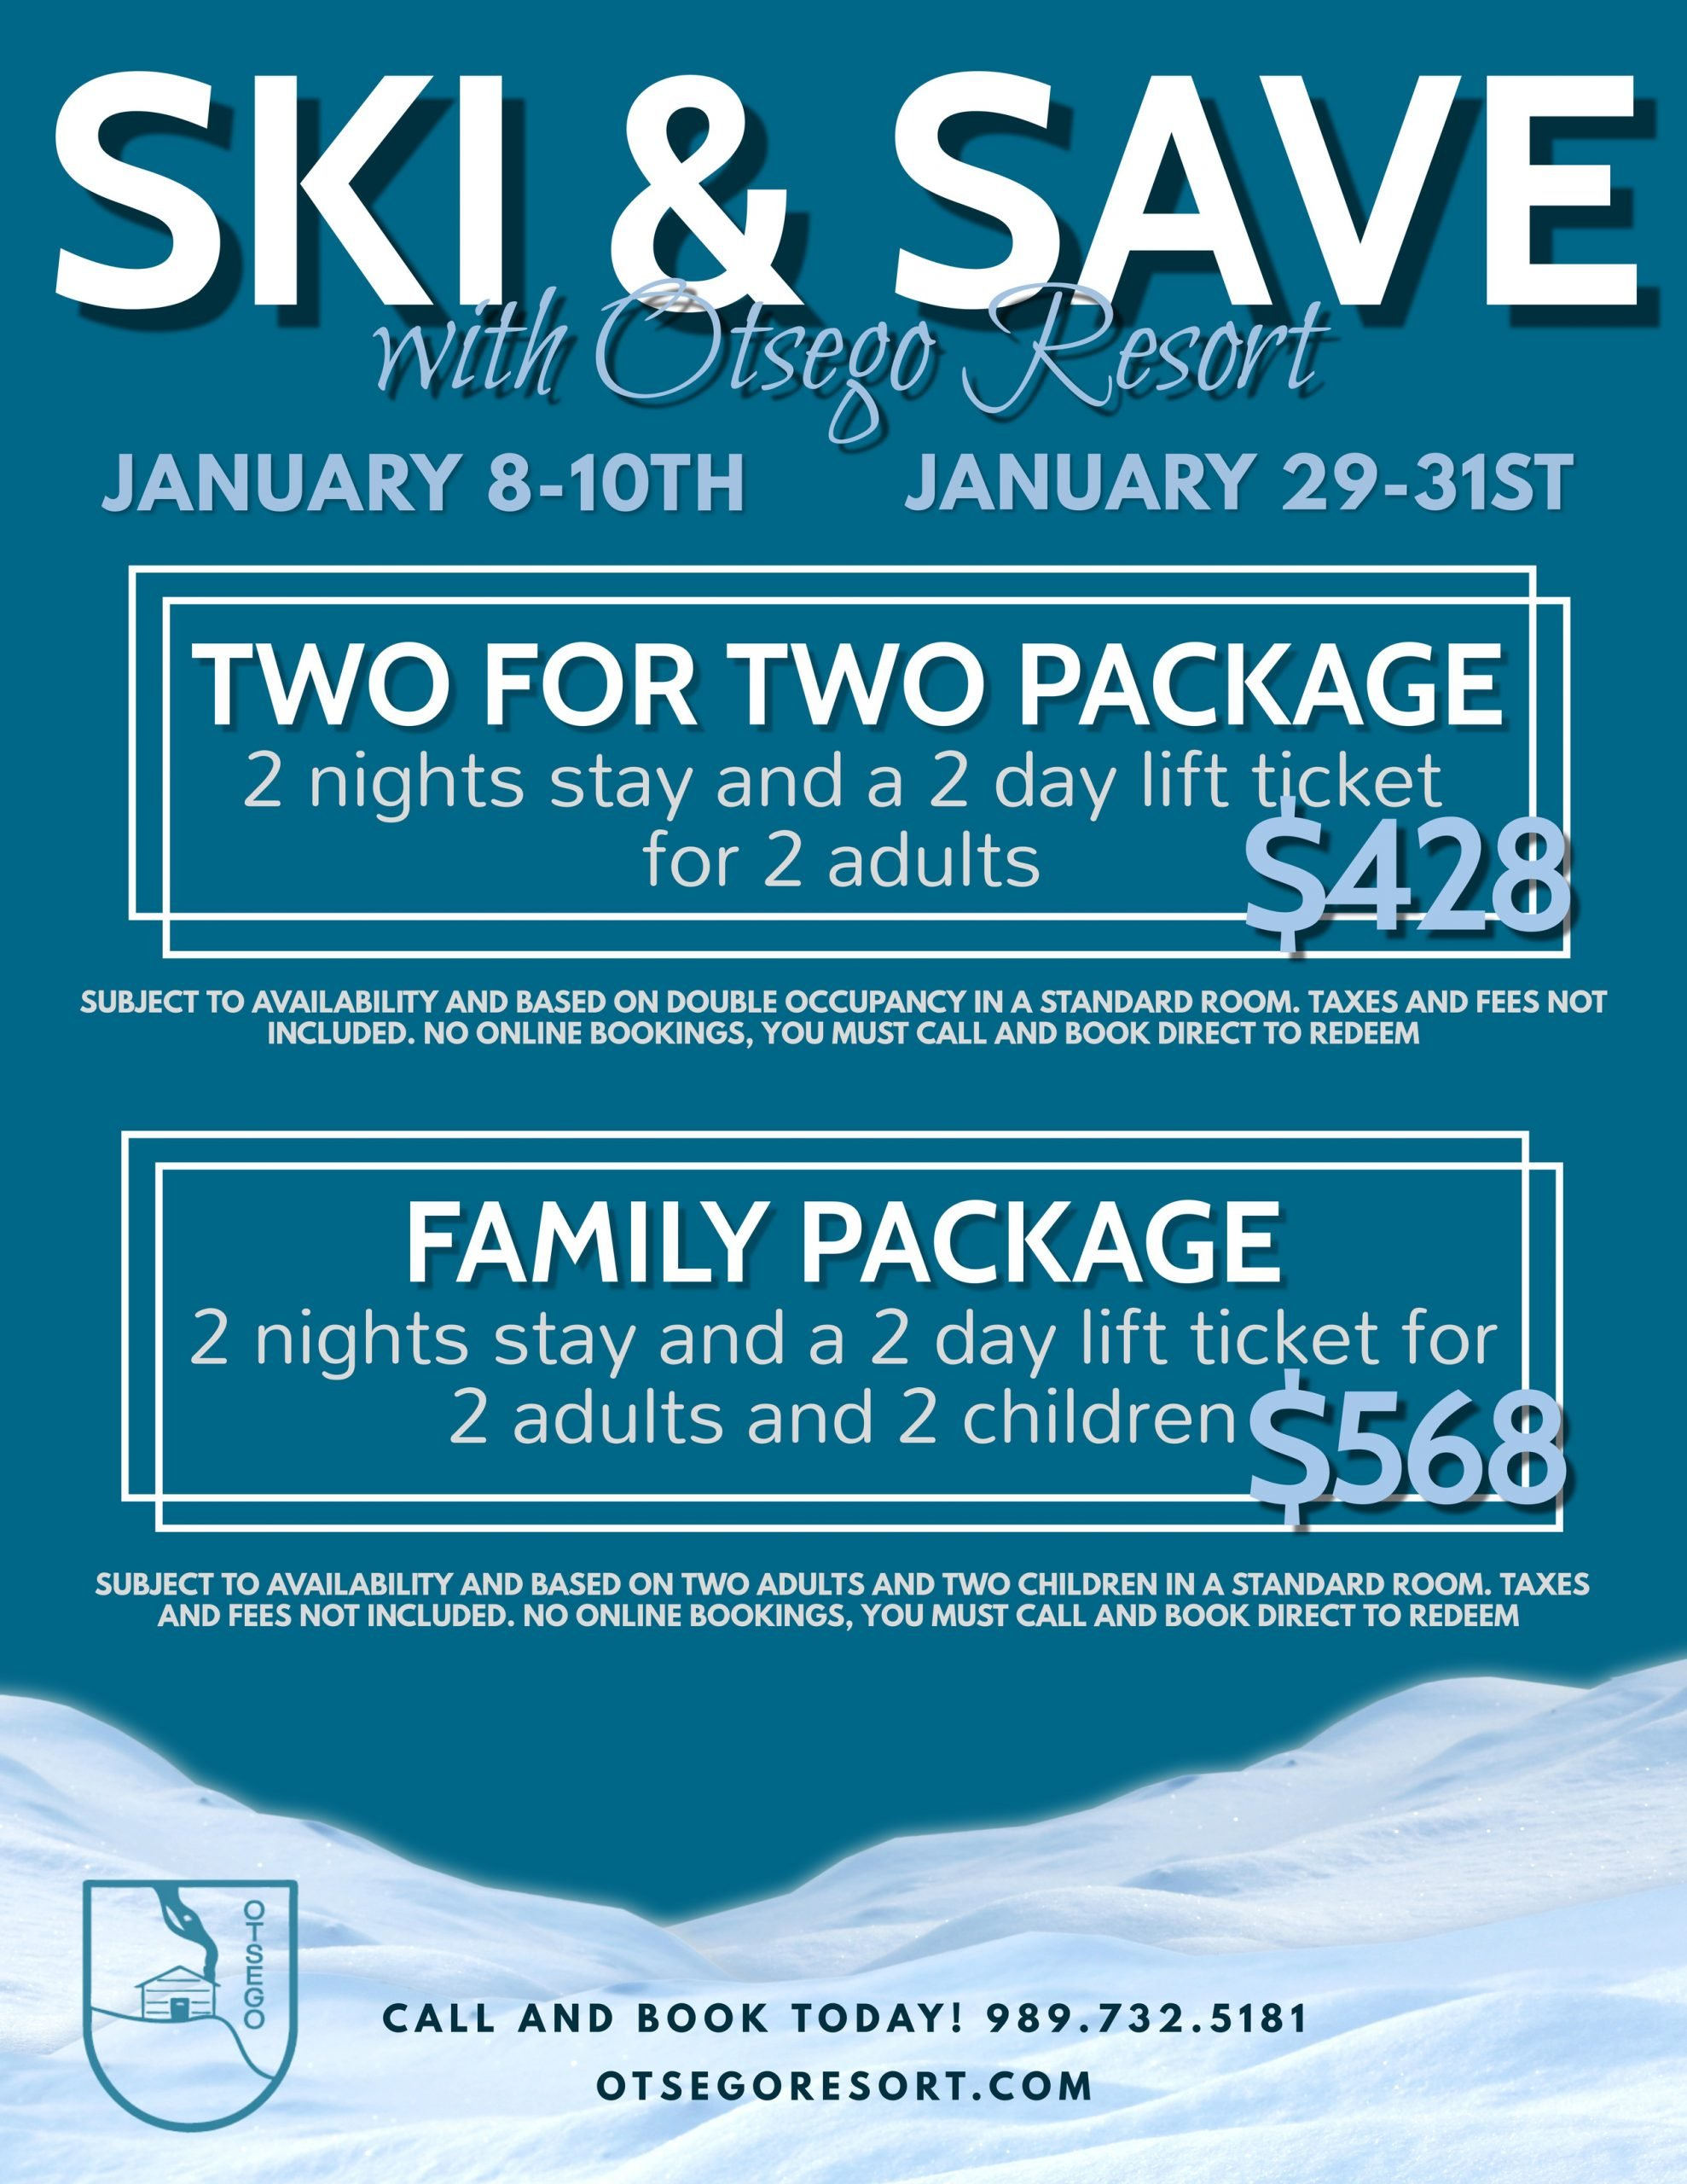 SKI AND SAVE PACKAGES